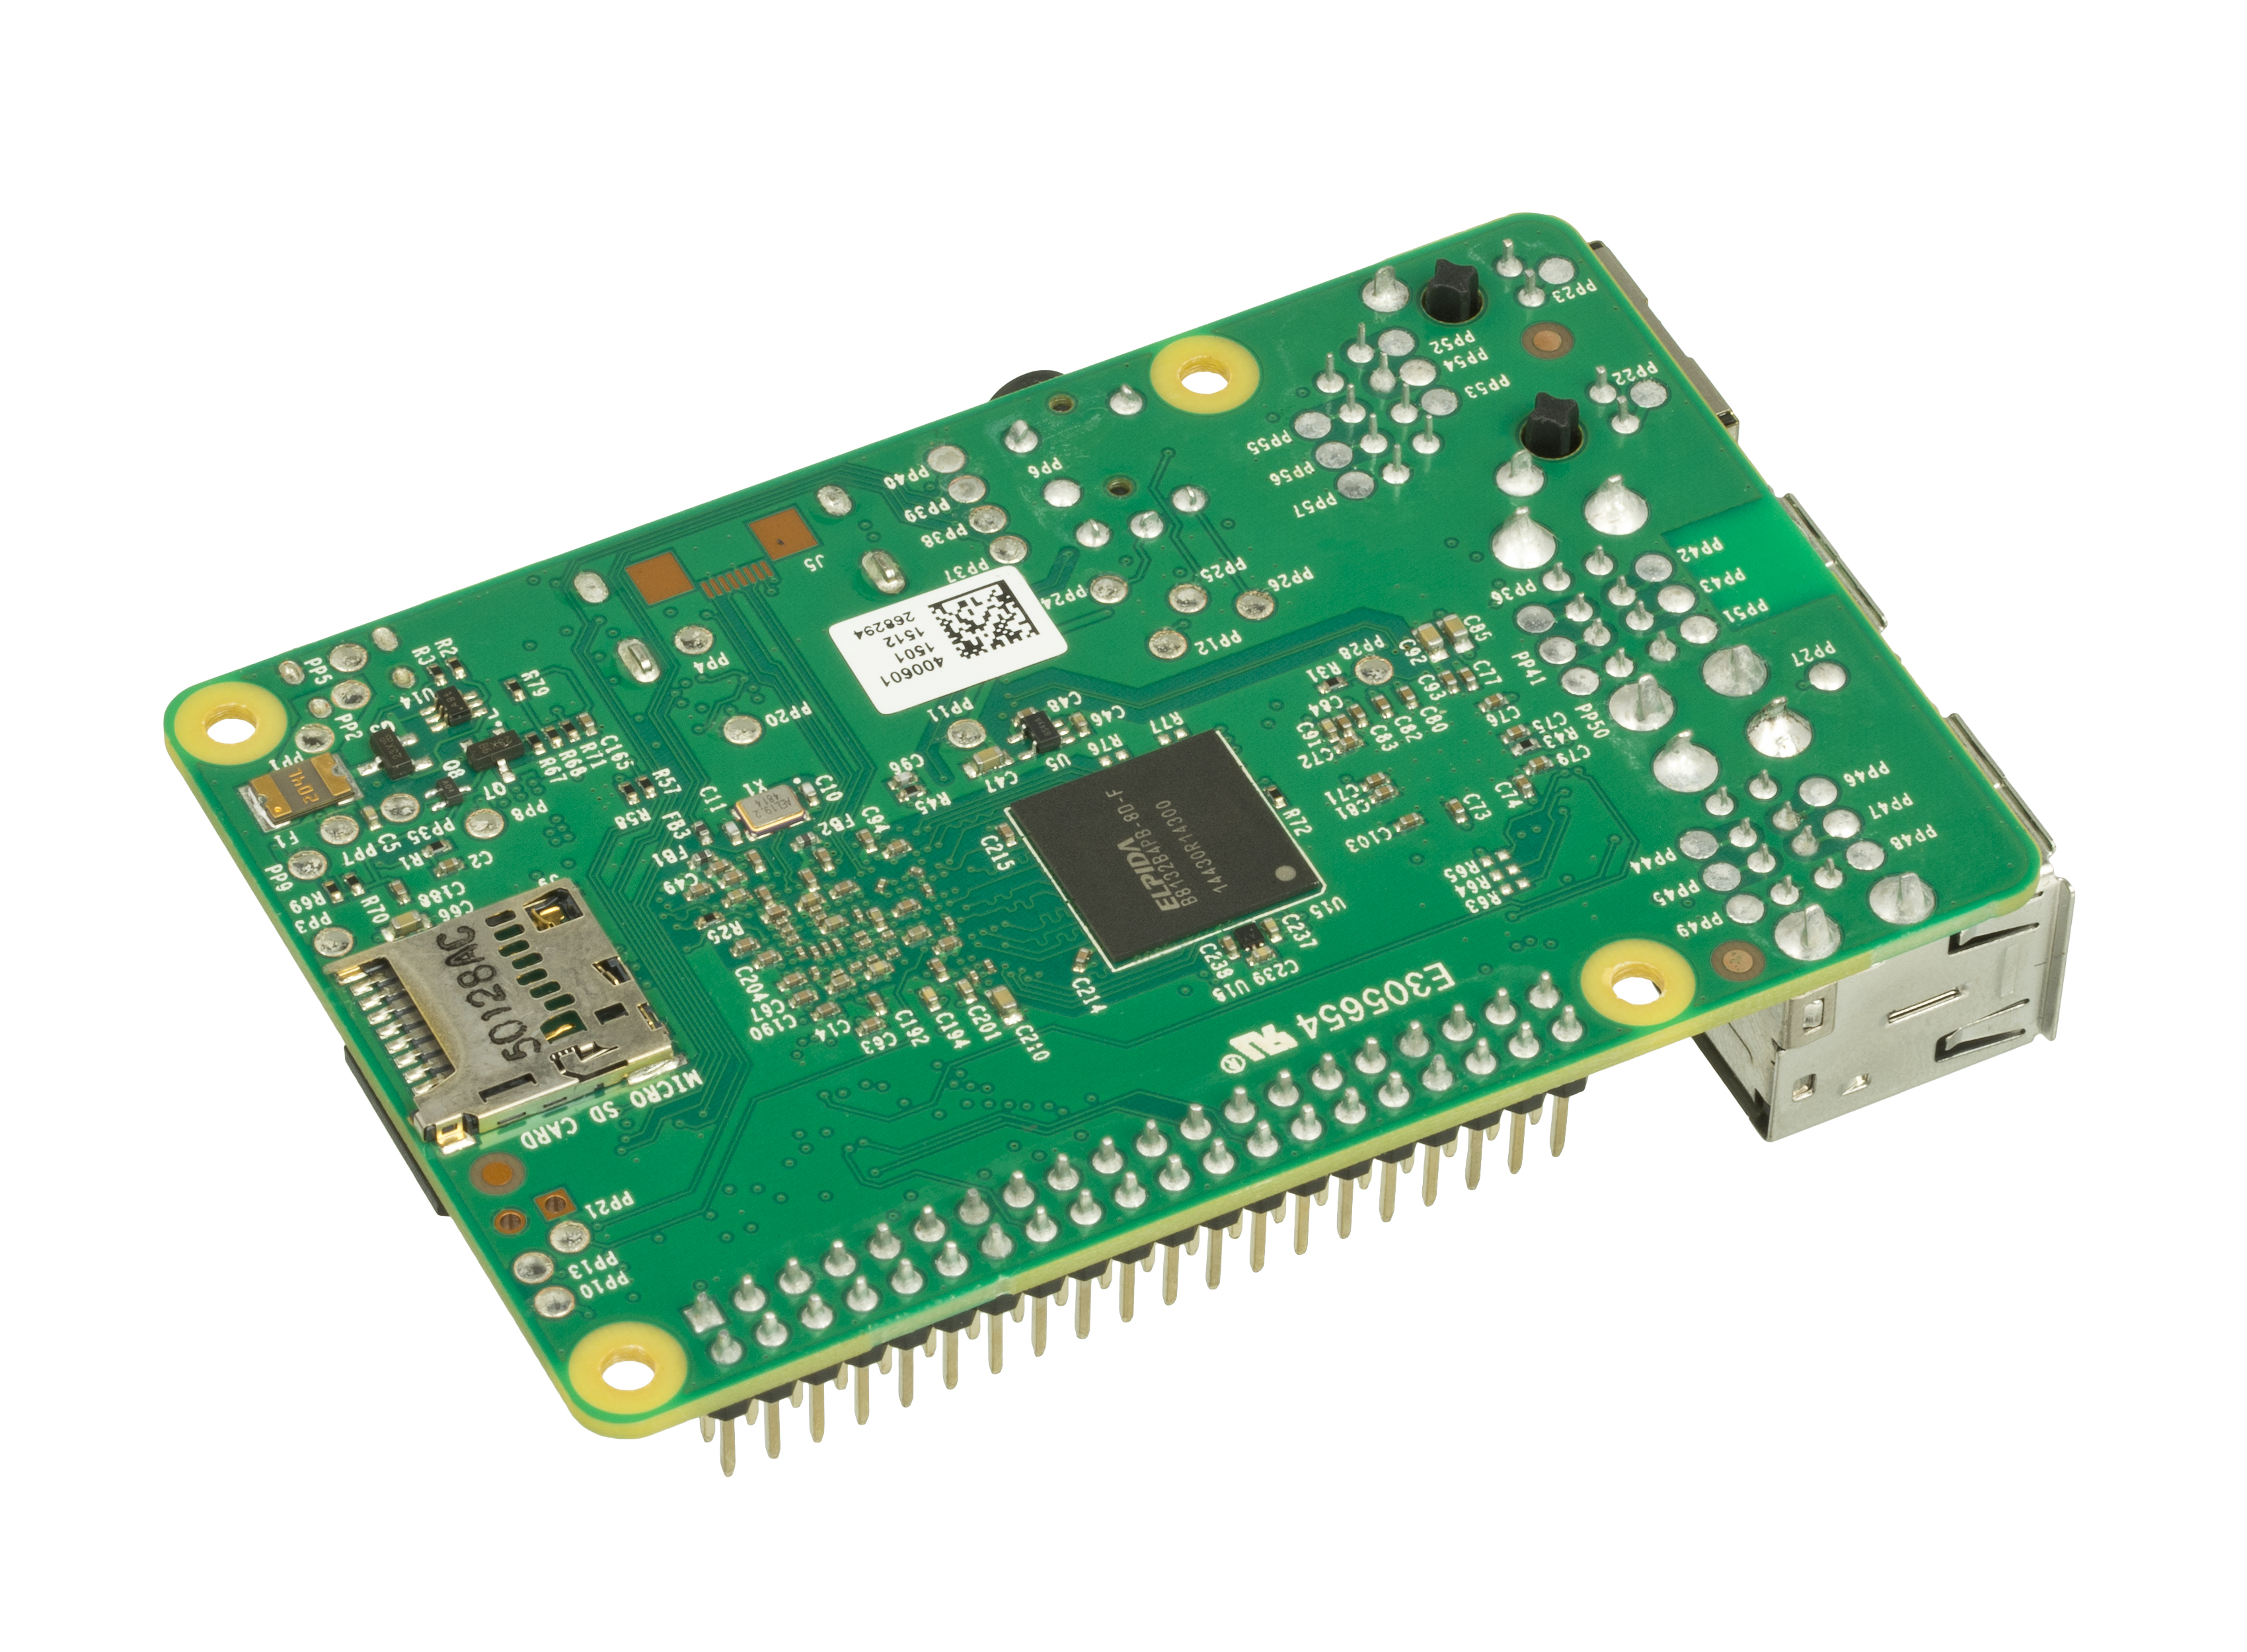 jpg The bottom of a Raspberry Pi 2 (model B), showing a Micro-SD expansion slot. The Raspberry Pi 2 is an inexpensive ($35) and self-contained micro-computer